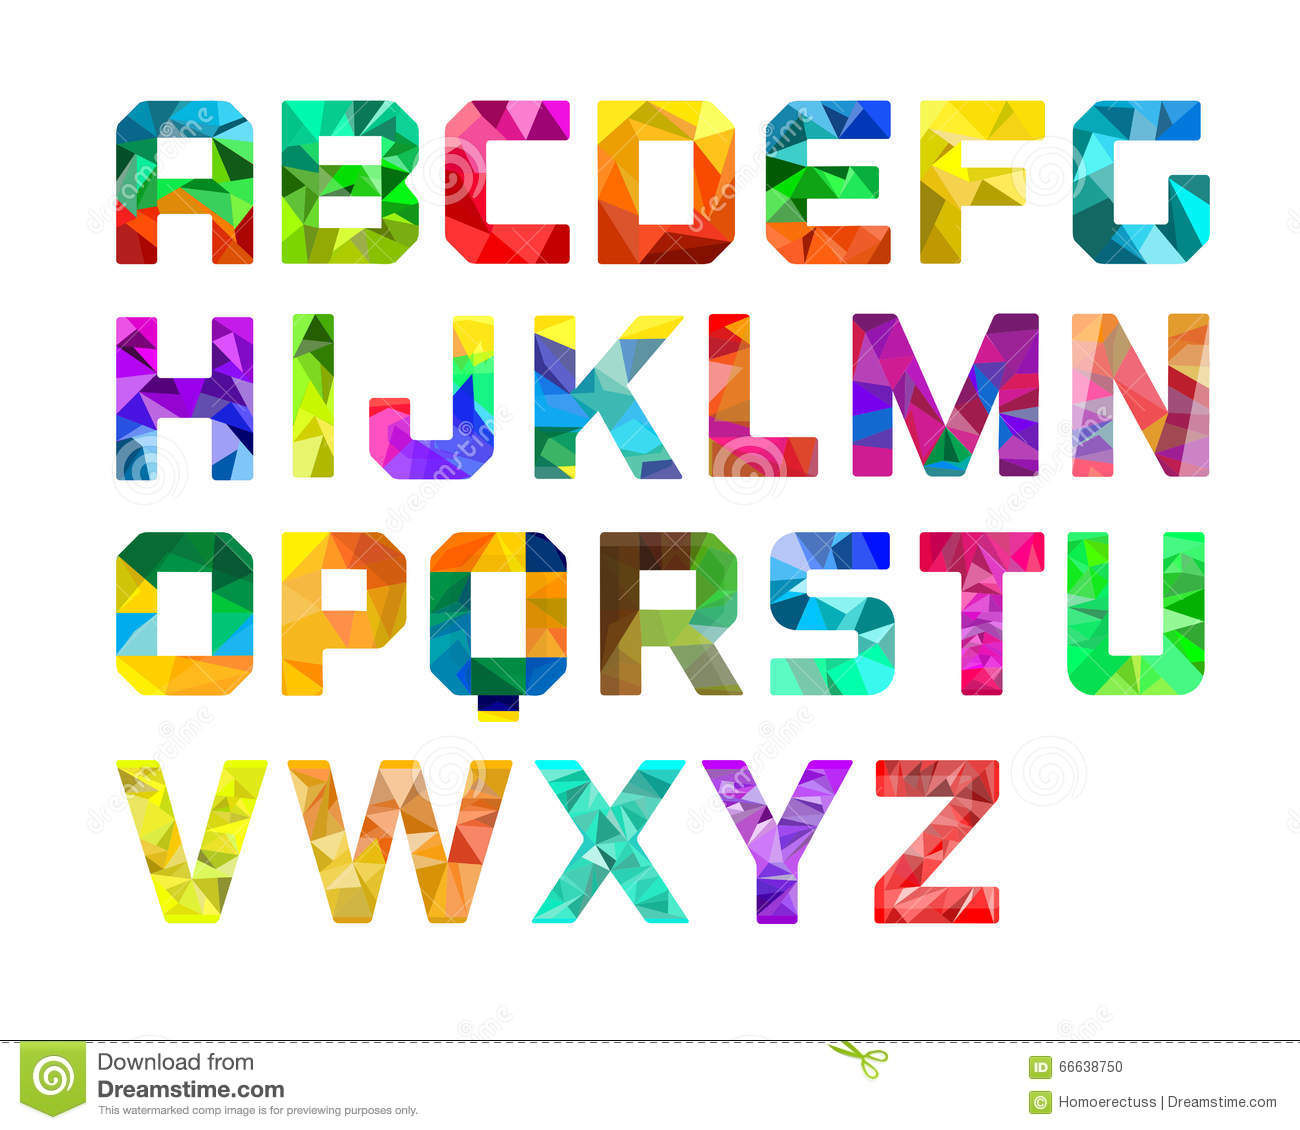 Colorful Alphabet Graphic Design Stock Vector - Image: 66638750